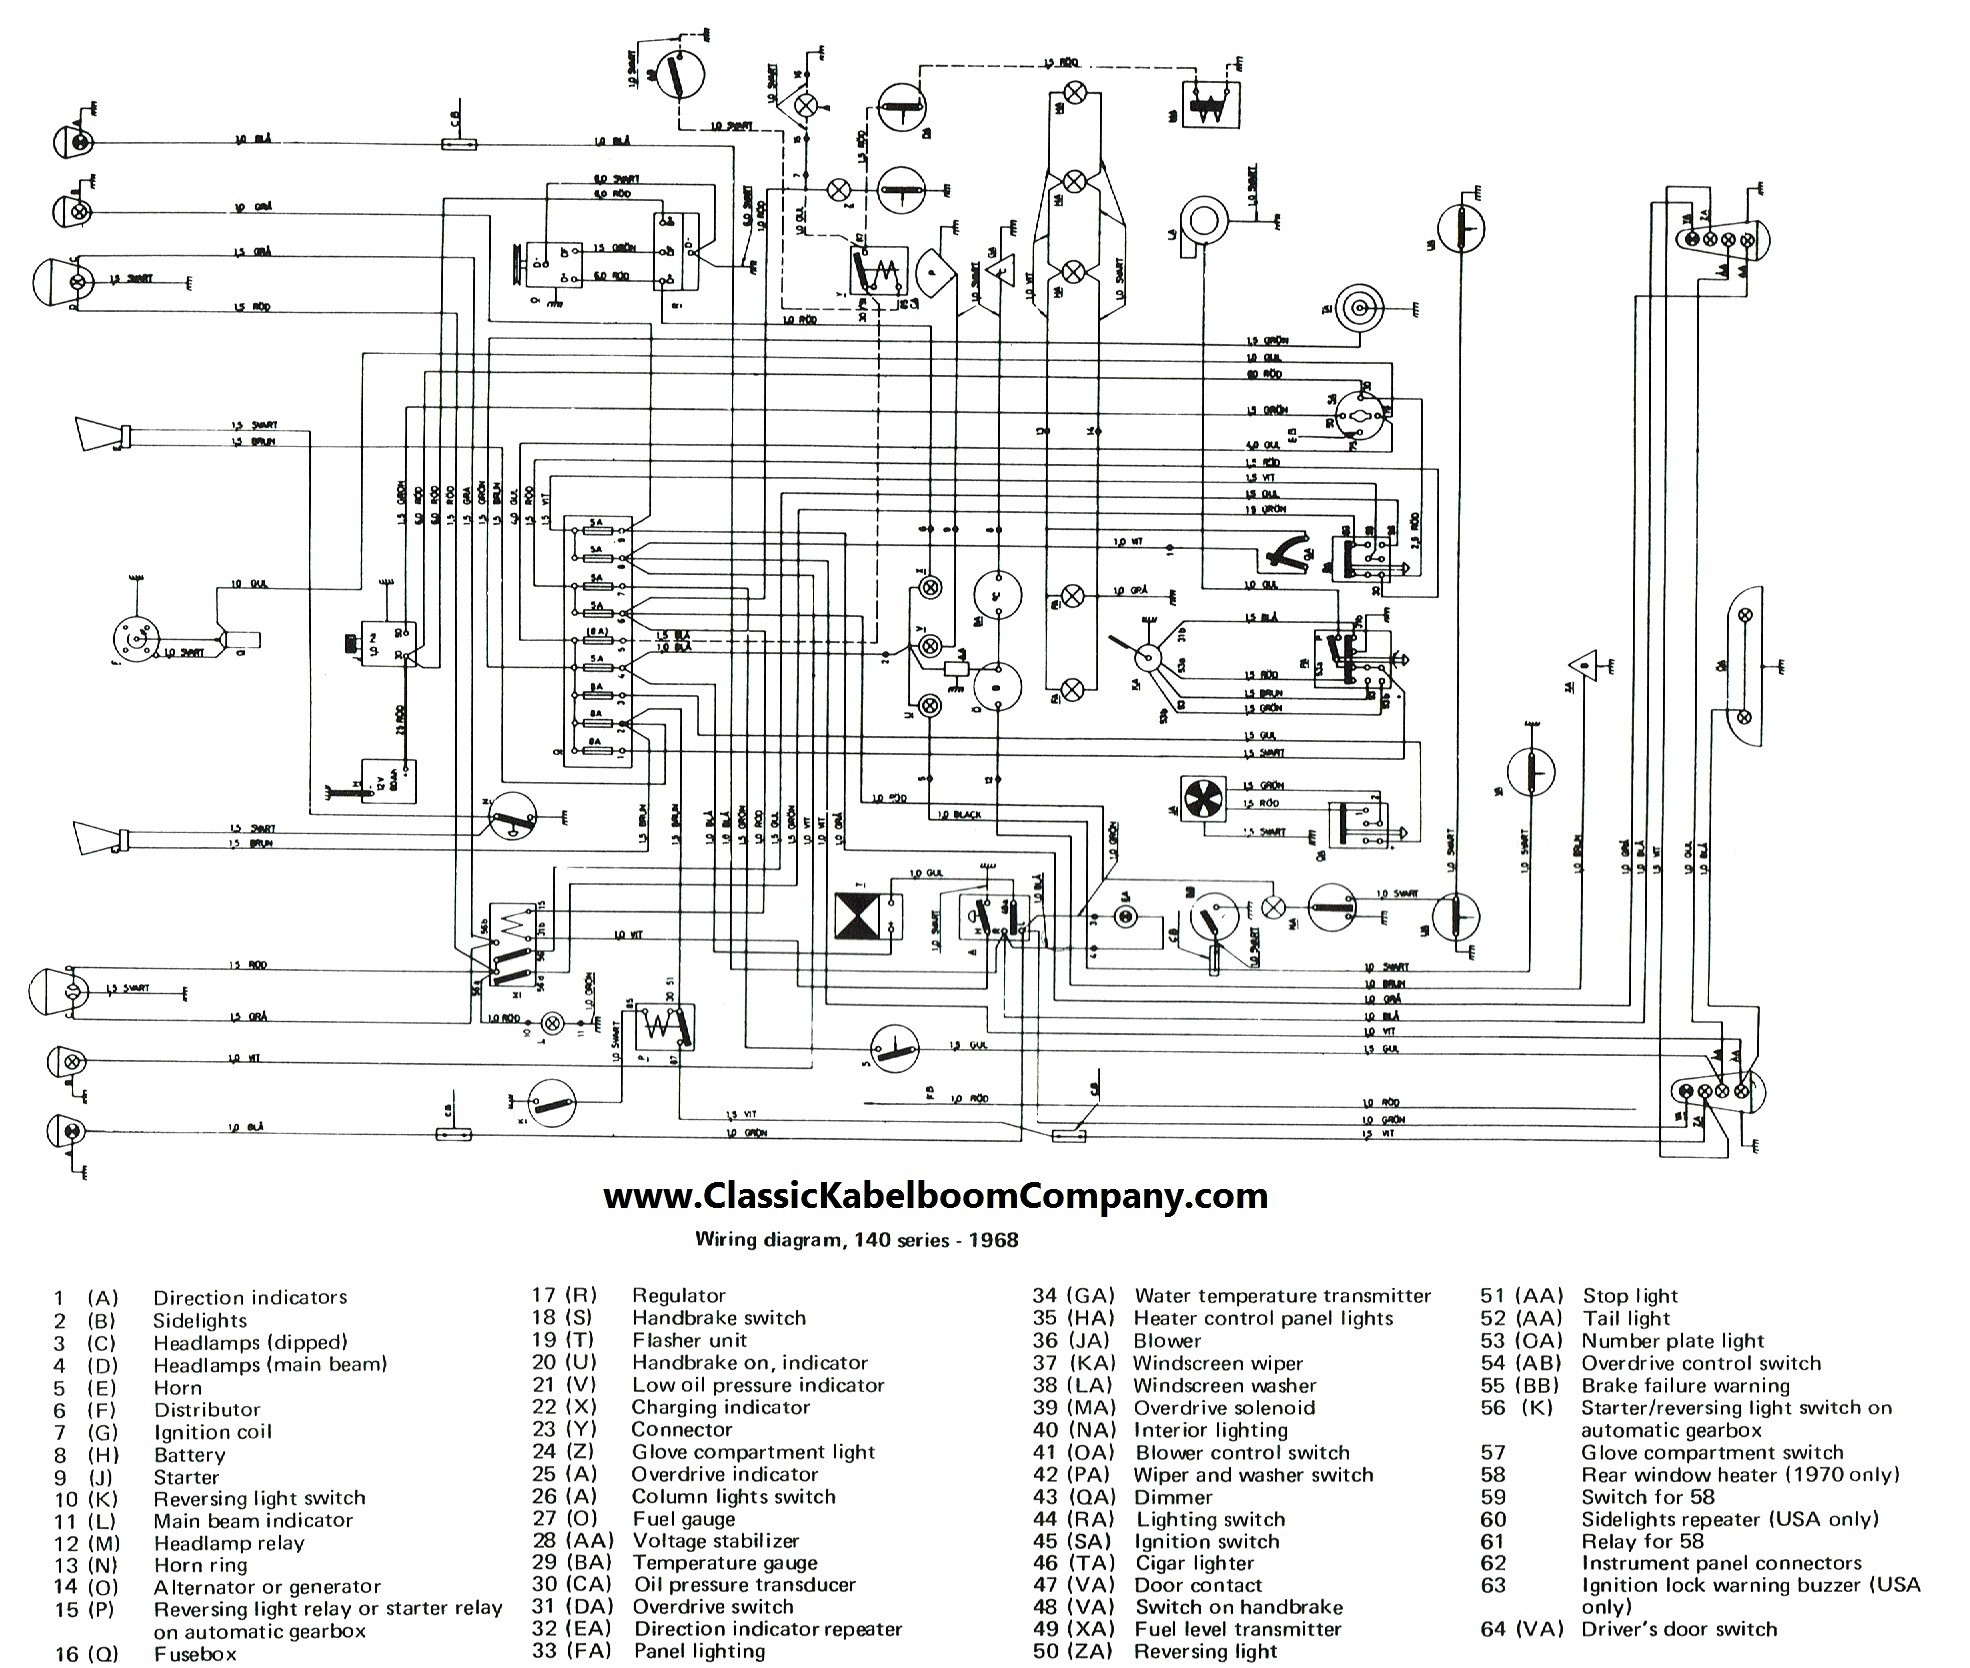 1993 honda accord o2 sensor diagram